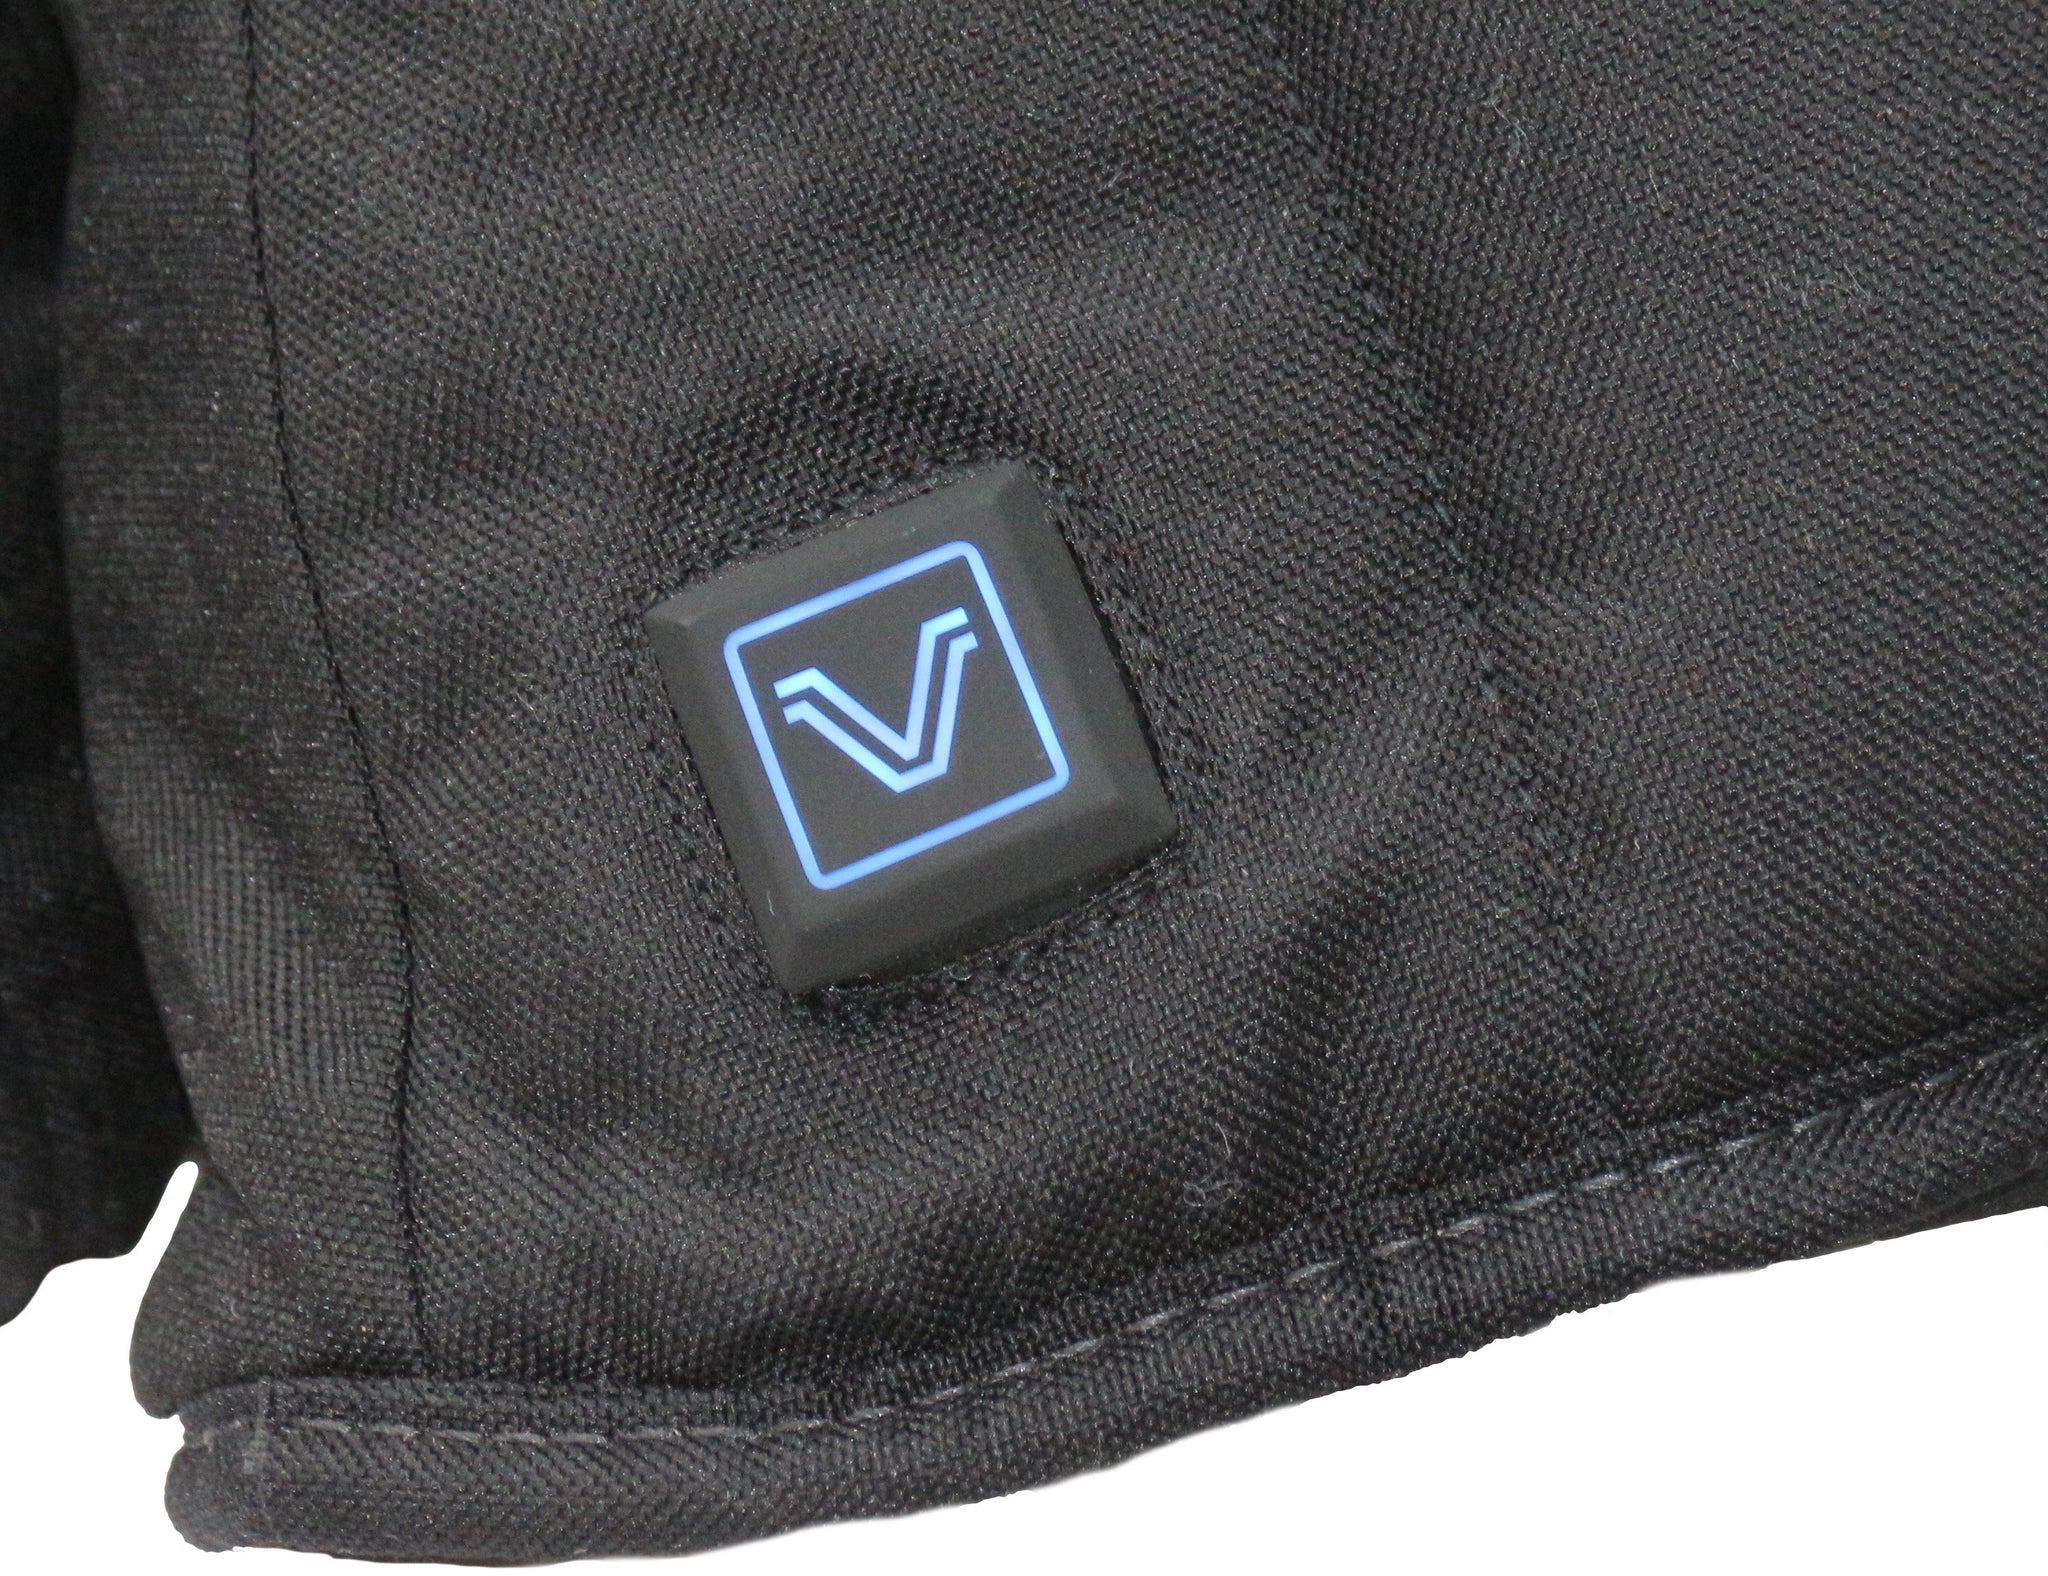 Heated Clothing Electric Clothing Heated Socks Heated Gloves >> Avalanche X 7v Heated Gloves